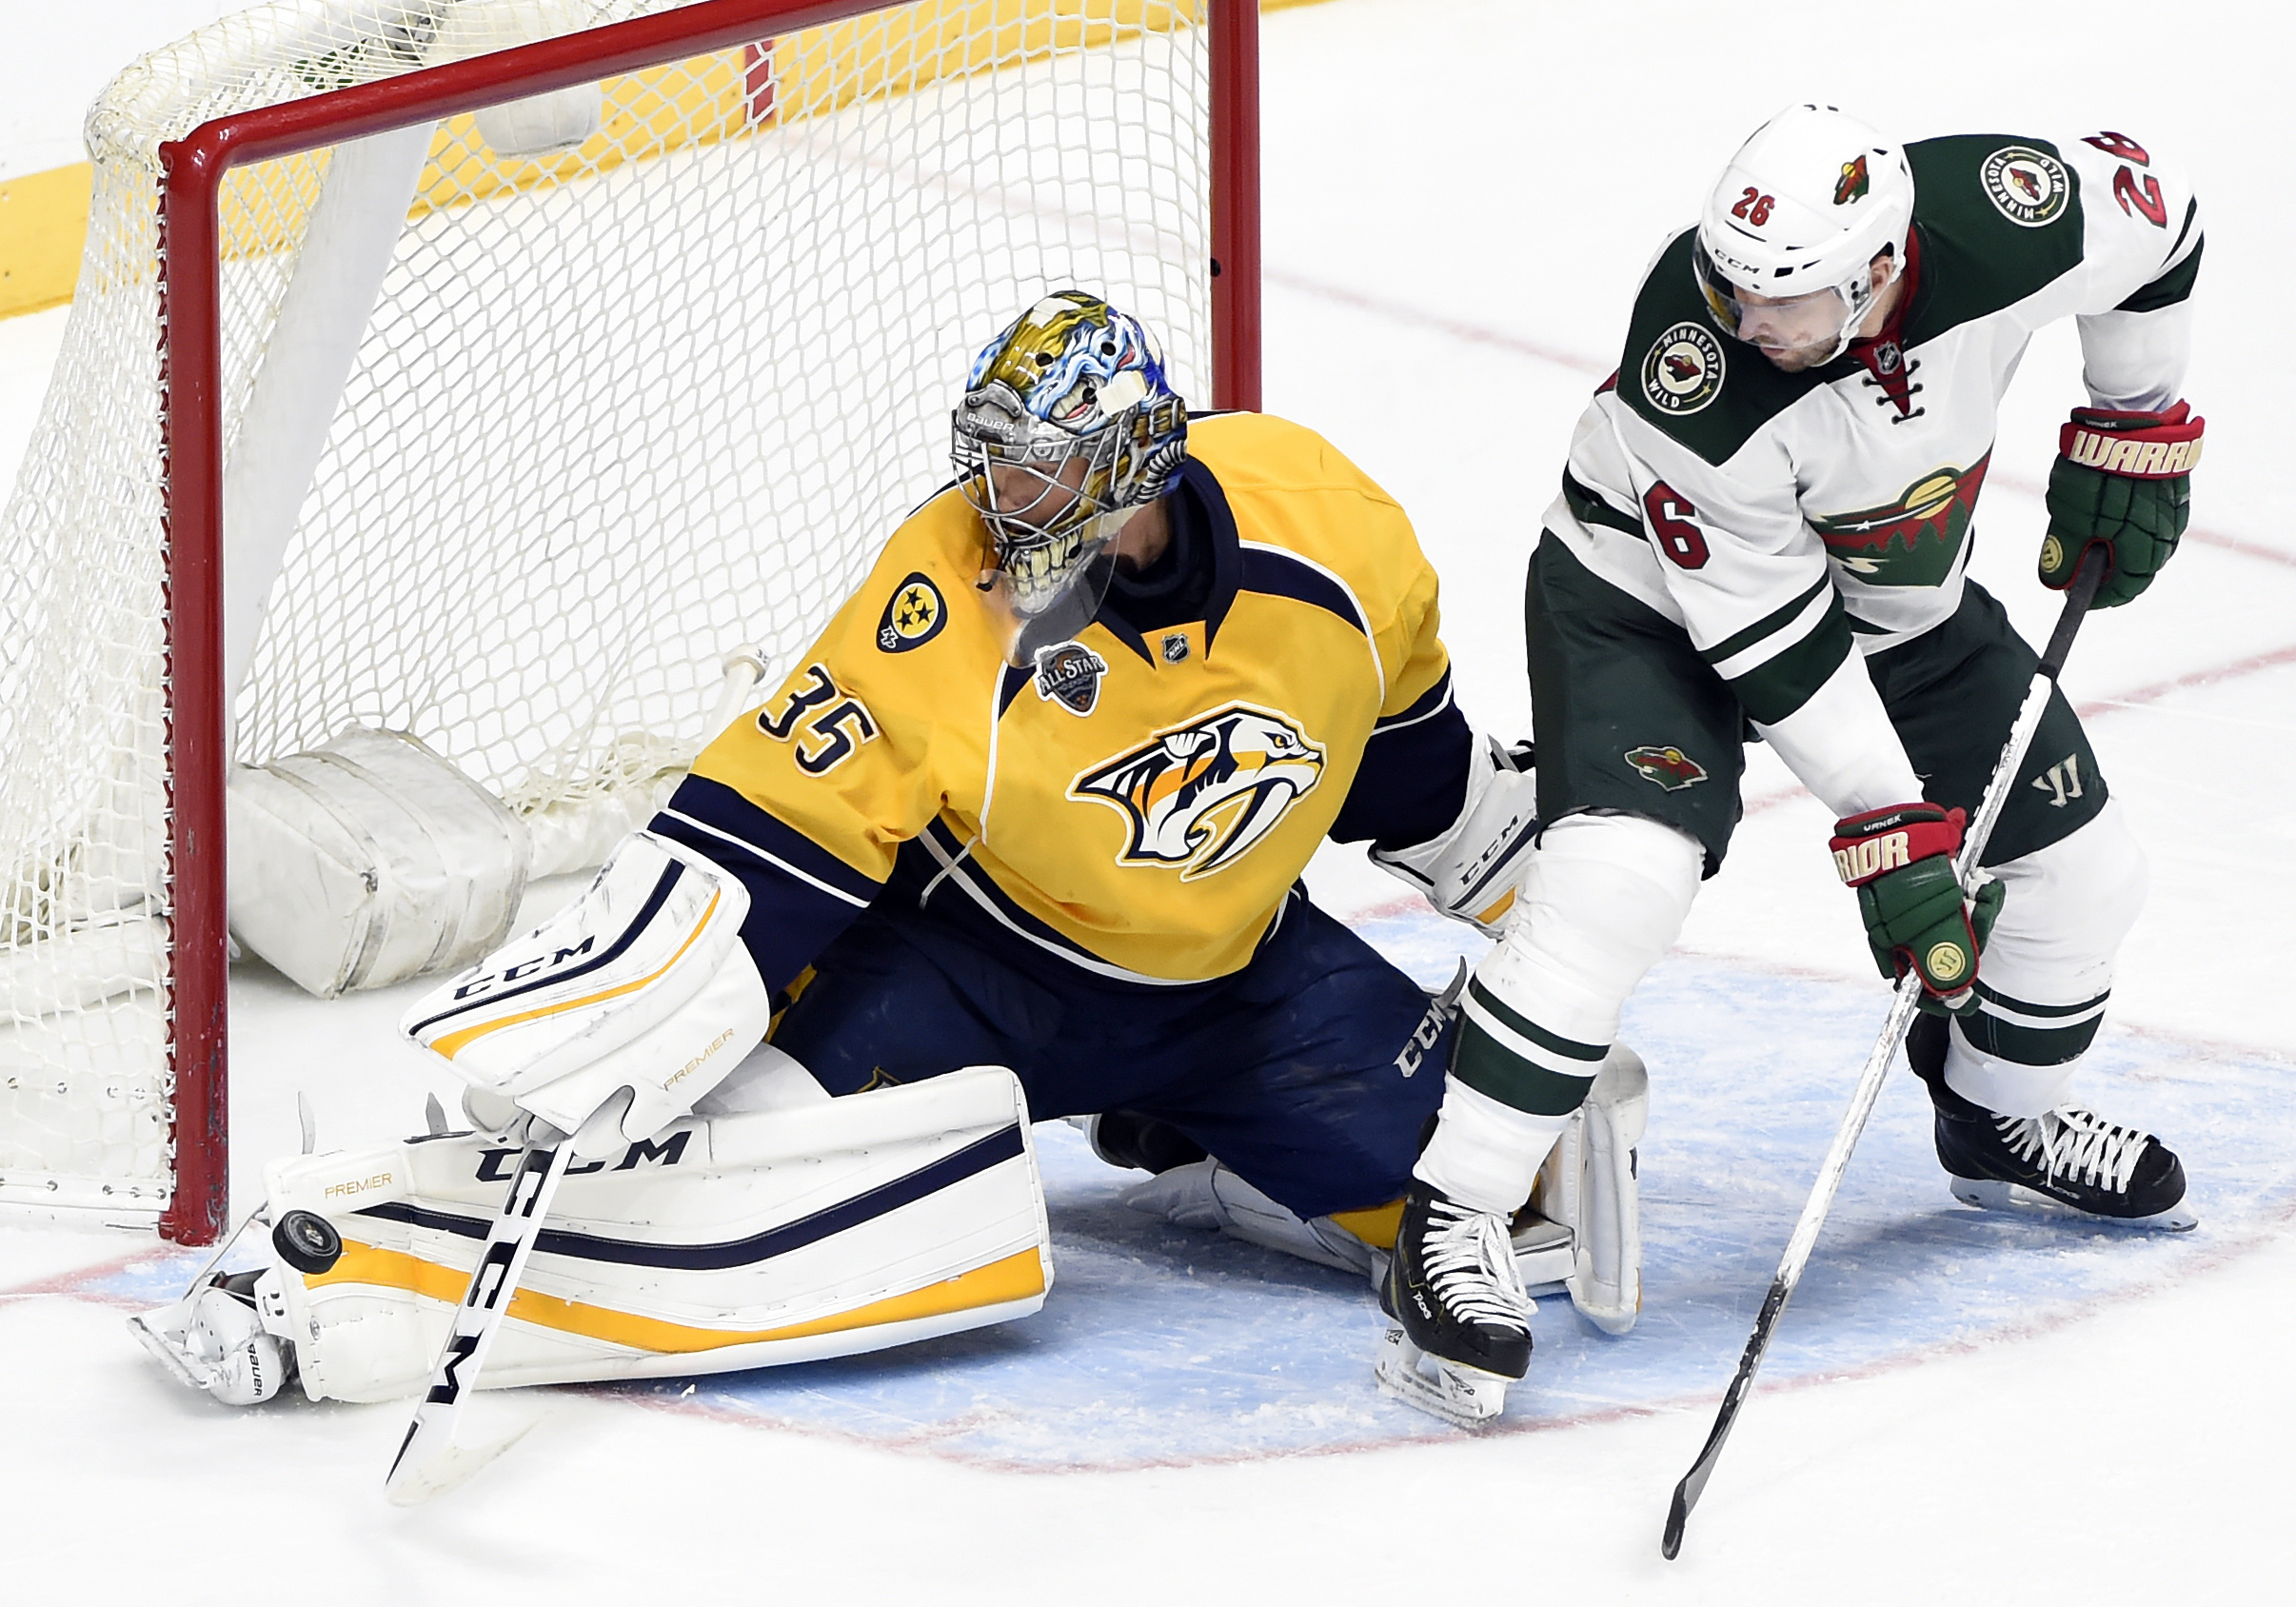 Minnesota Wild left wing Thomas Vanek (26), of Austria, watches the puck bounce past Nashville Predators goalie Pekka Rinne (35), of Finland, in the third period of an NHL hockey game Saturday, Dec. 19, 2015, in Nashville, Tenn. The Predators won 3-2. (AP